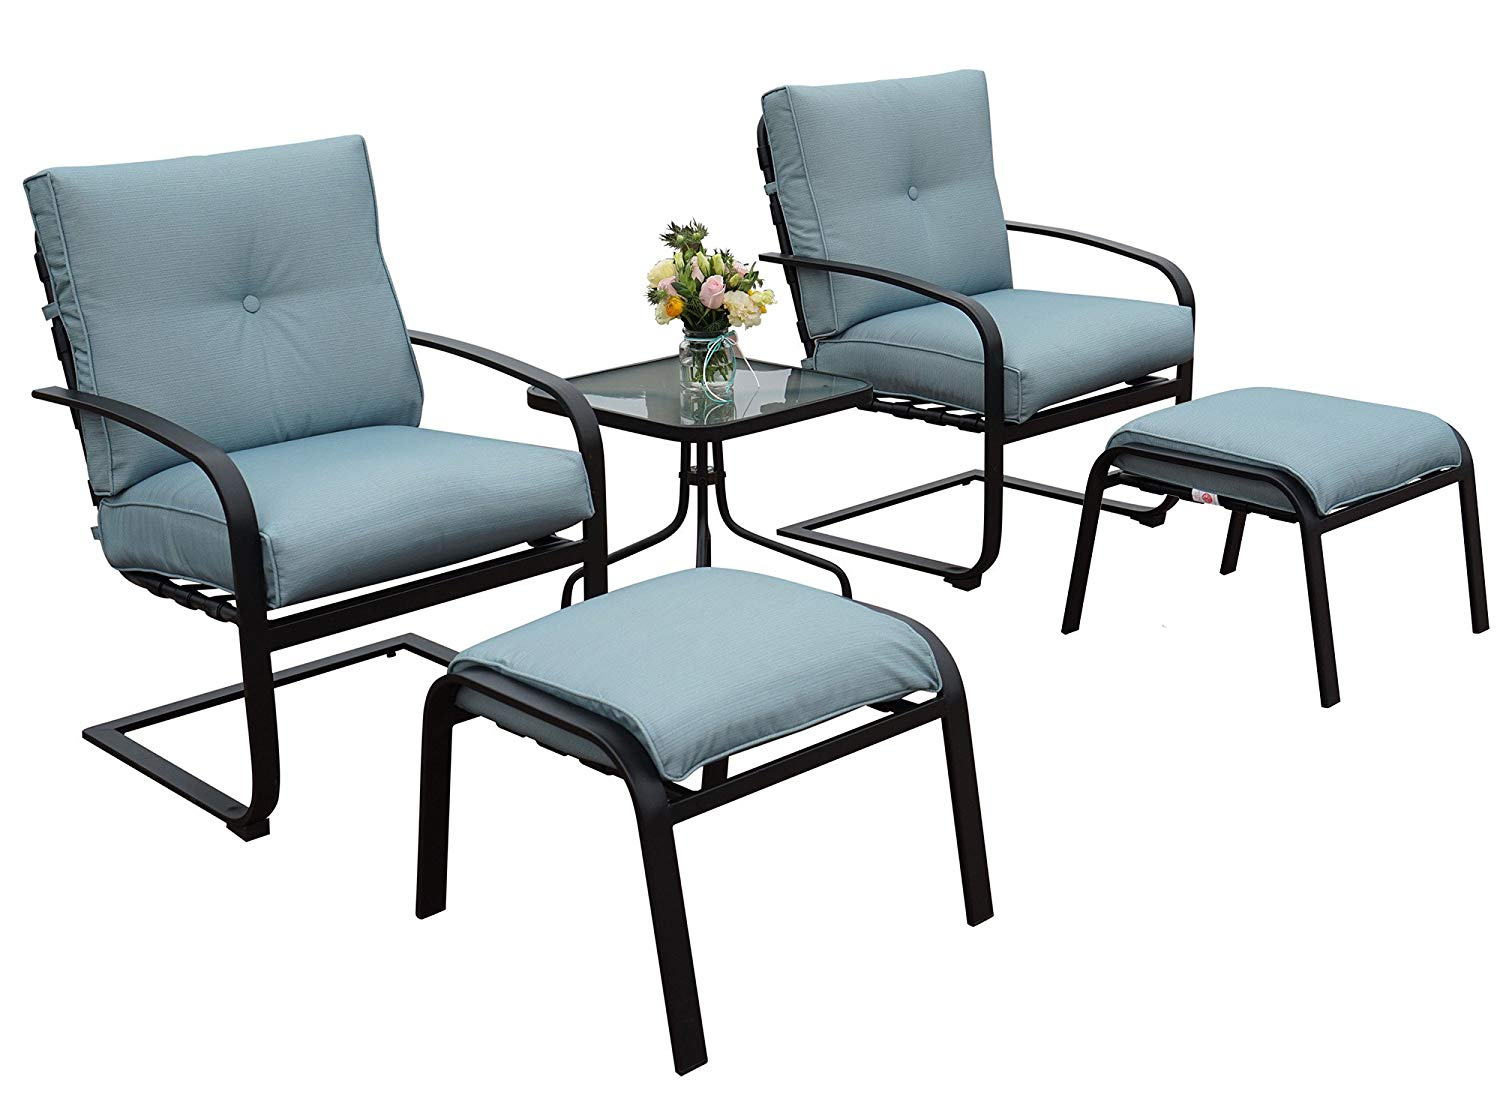 Kozyard Habana Patio 5PCS Spring Conversation Sets with Blue Cushion and Ottoman Great for Patio, Deck, Porch, Poolside Conversation or Drinks